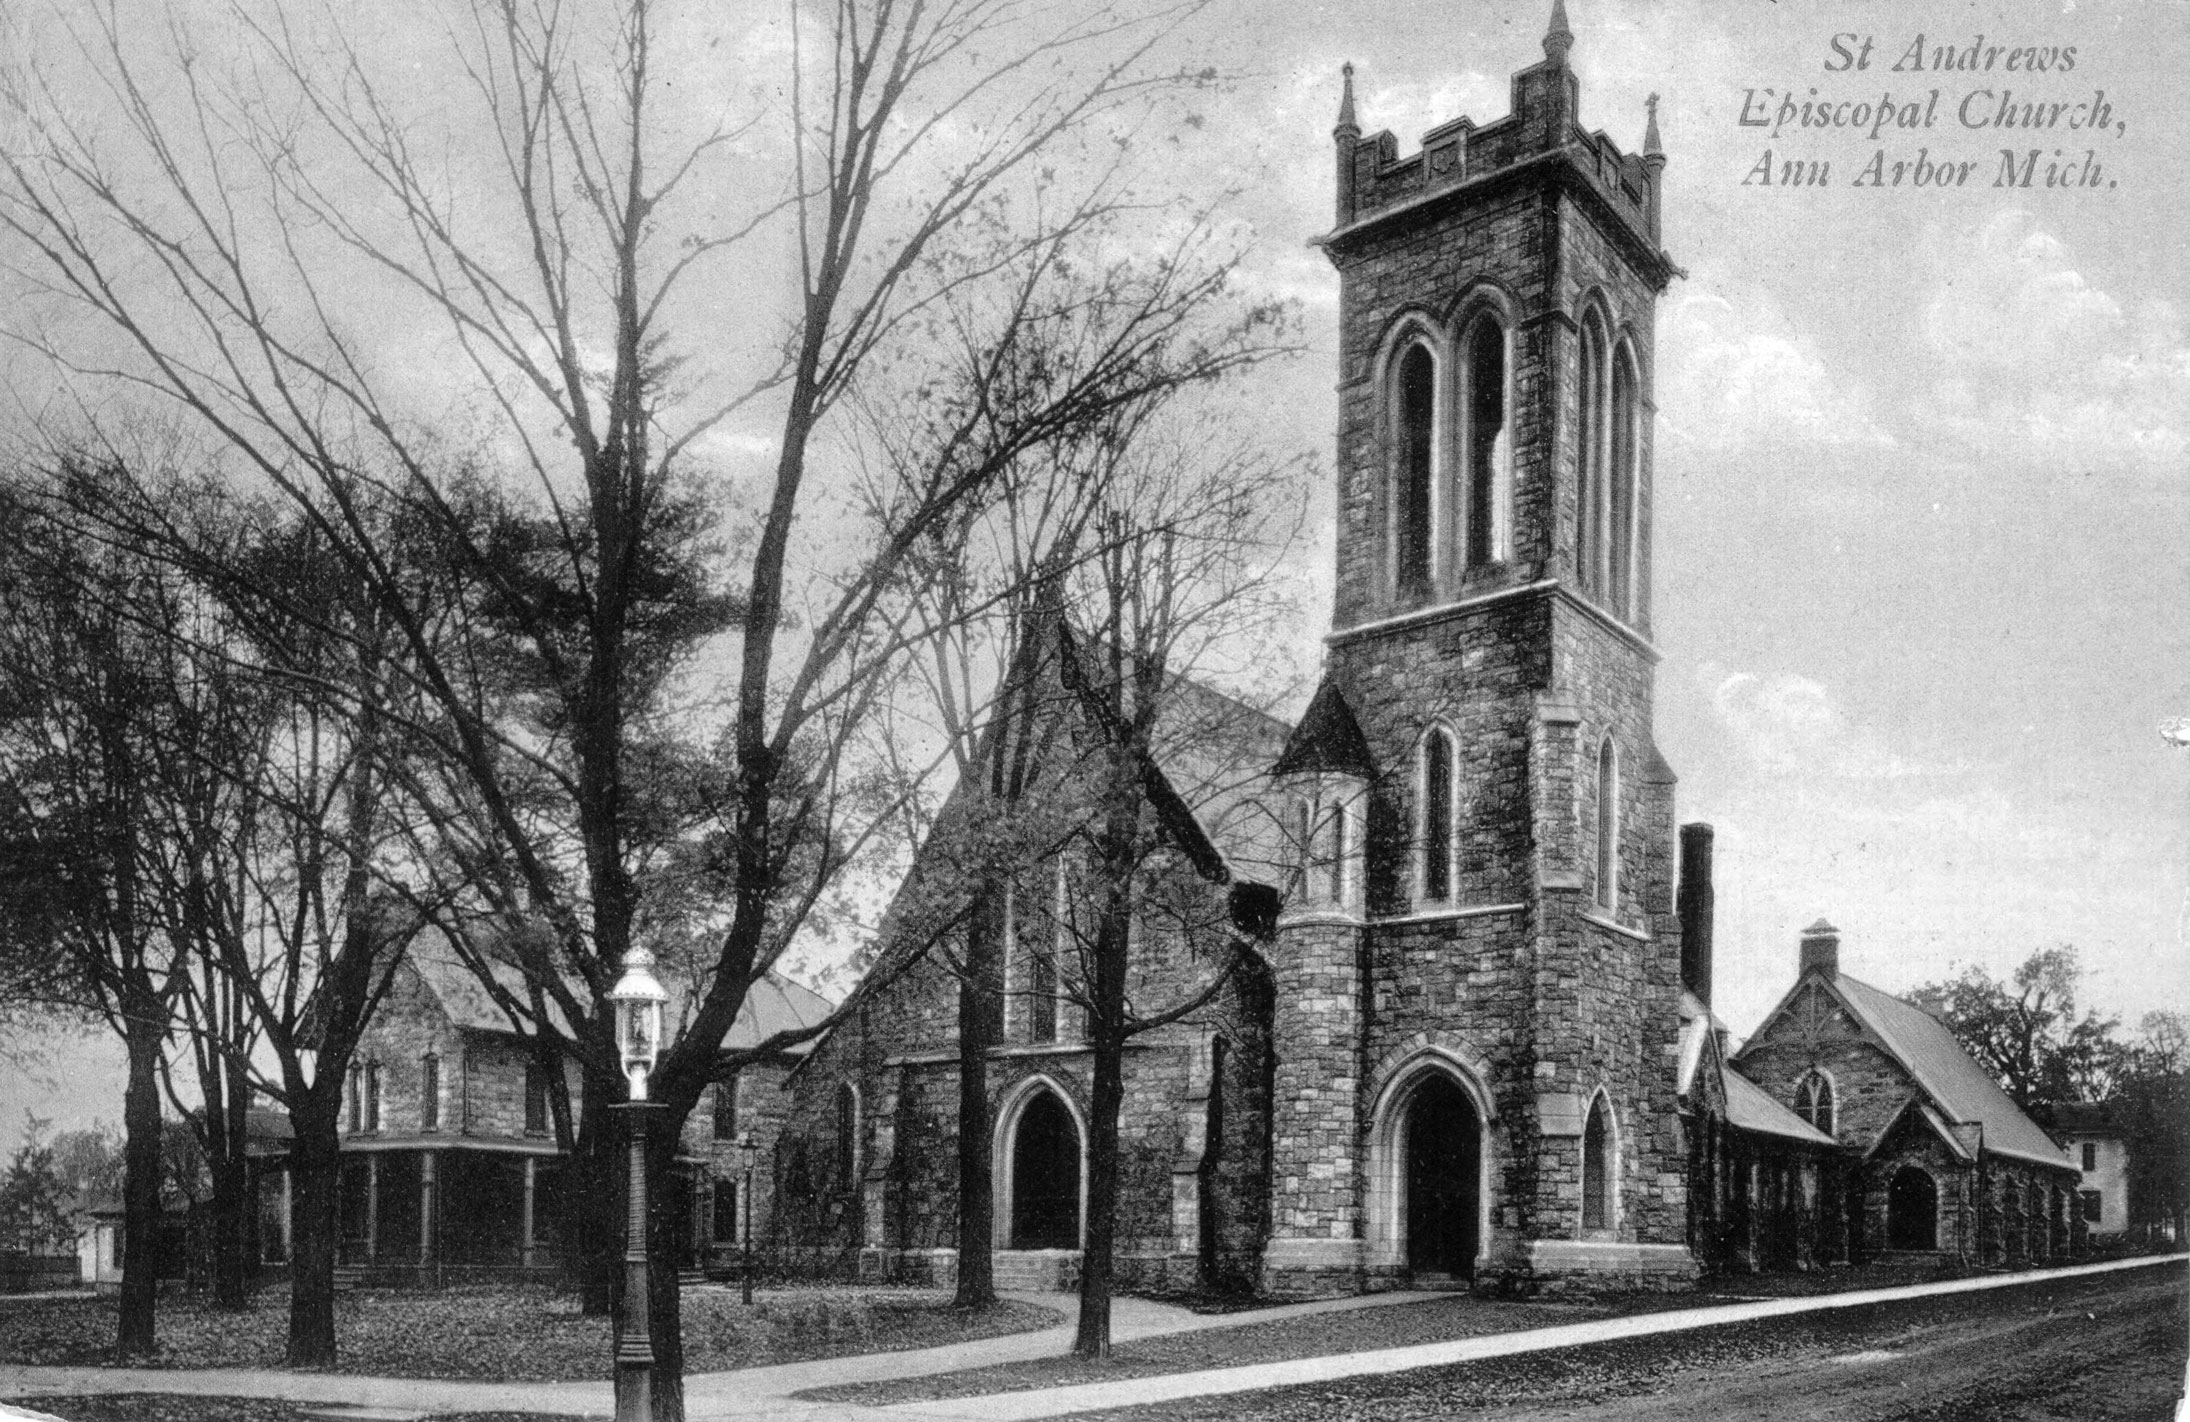 St. Andrew's Episcopal Church image